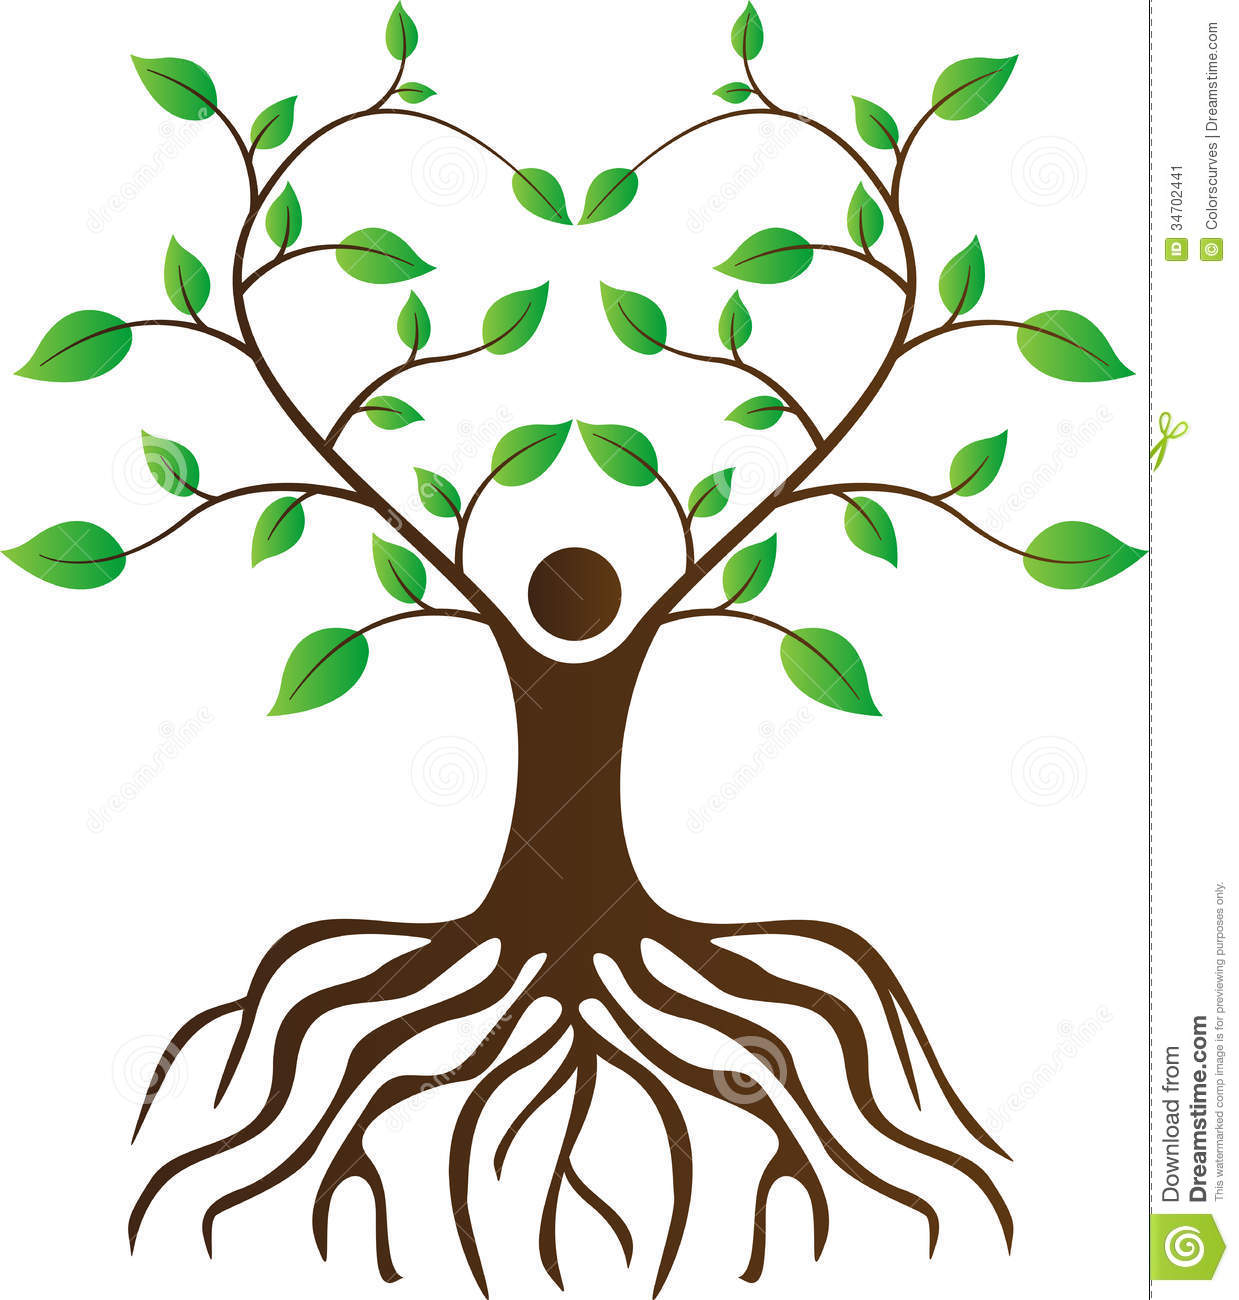 Clip Art Tree With Roots Clipart Panda F-Clip Art Tree With Roots Clipart Panda Free Clipart Images-4